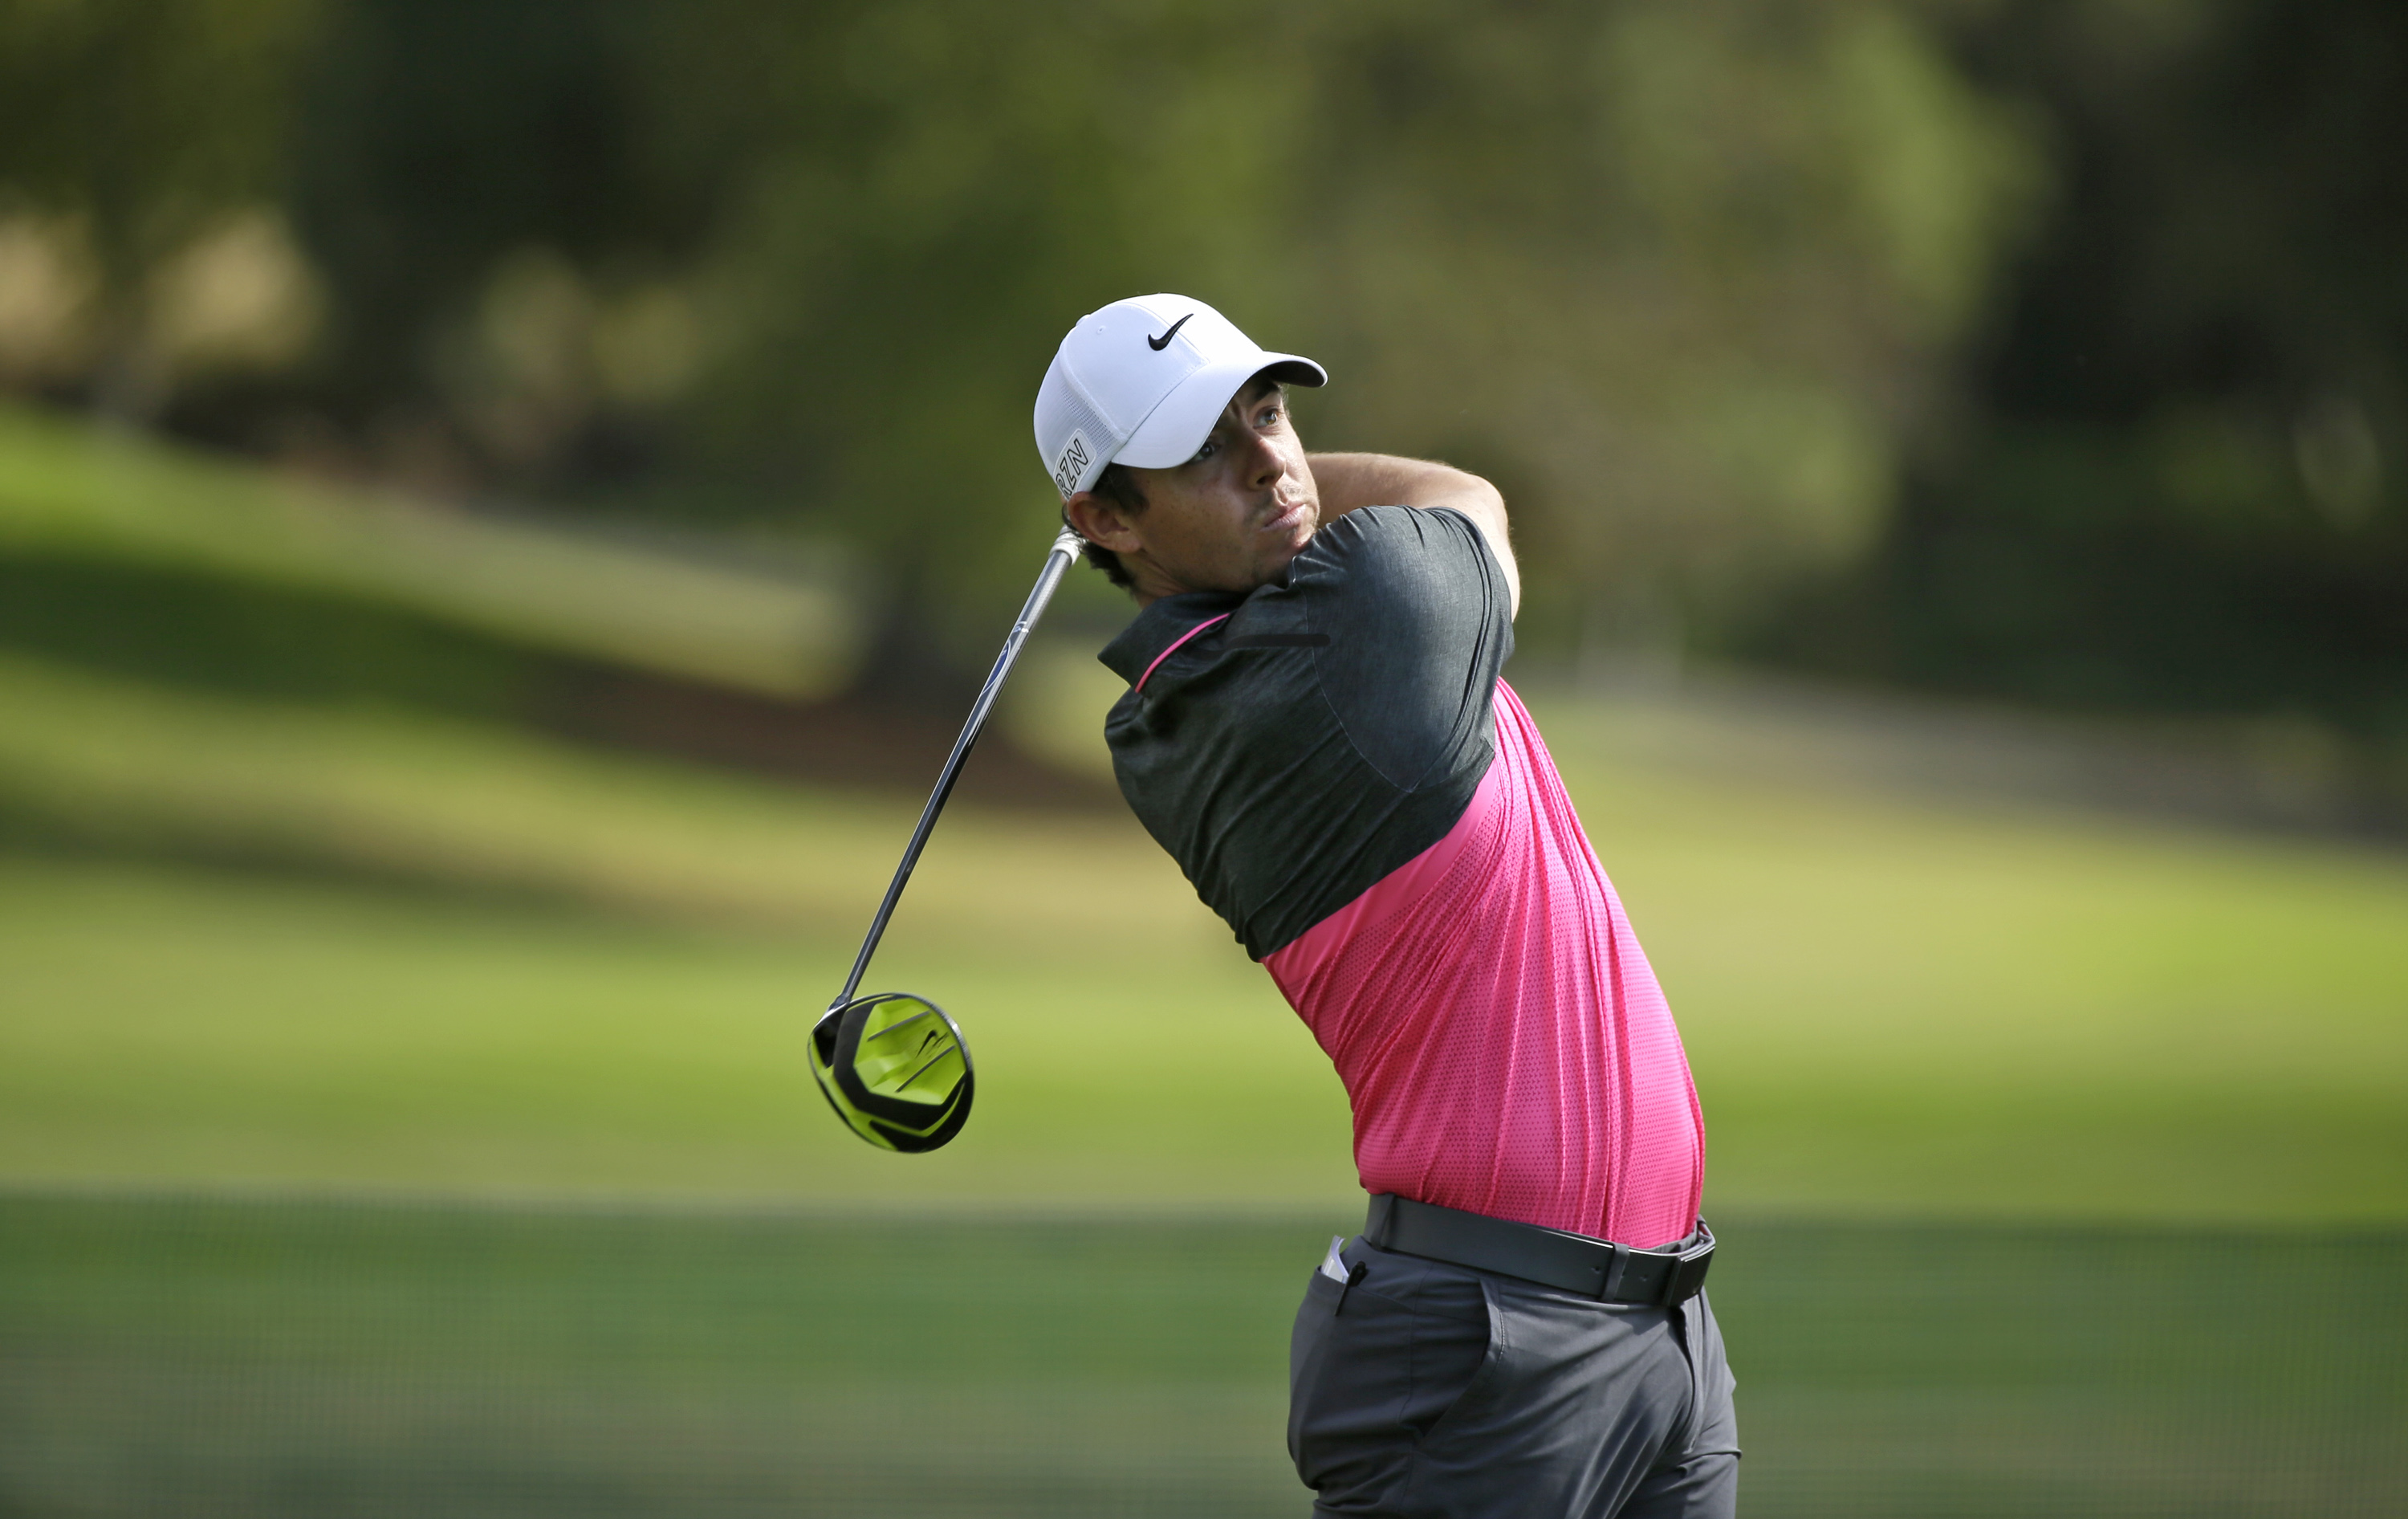 Rory McIlroy on the Silverado Resort North Course during the final round of the Frys.com Open.